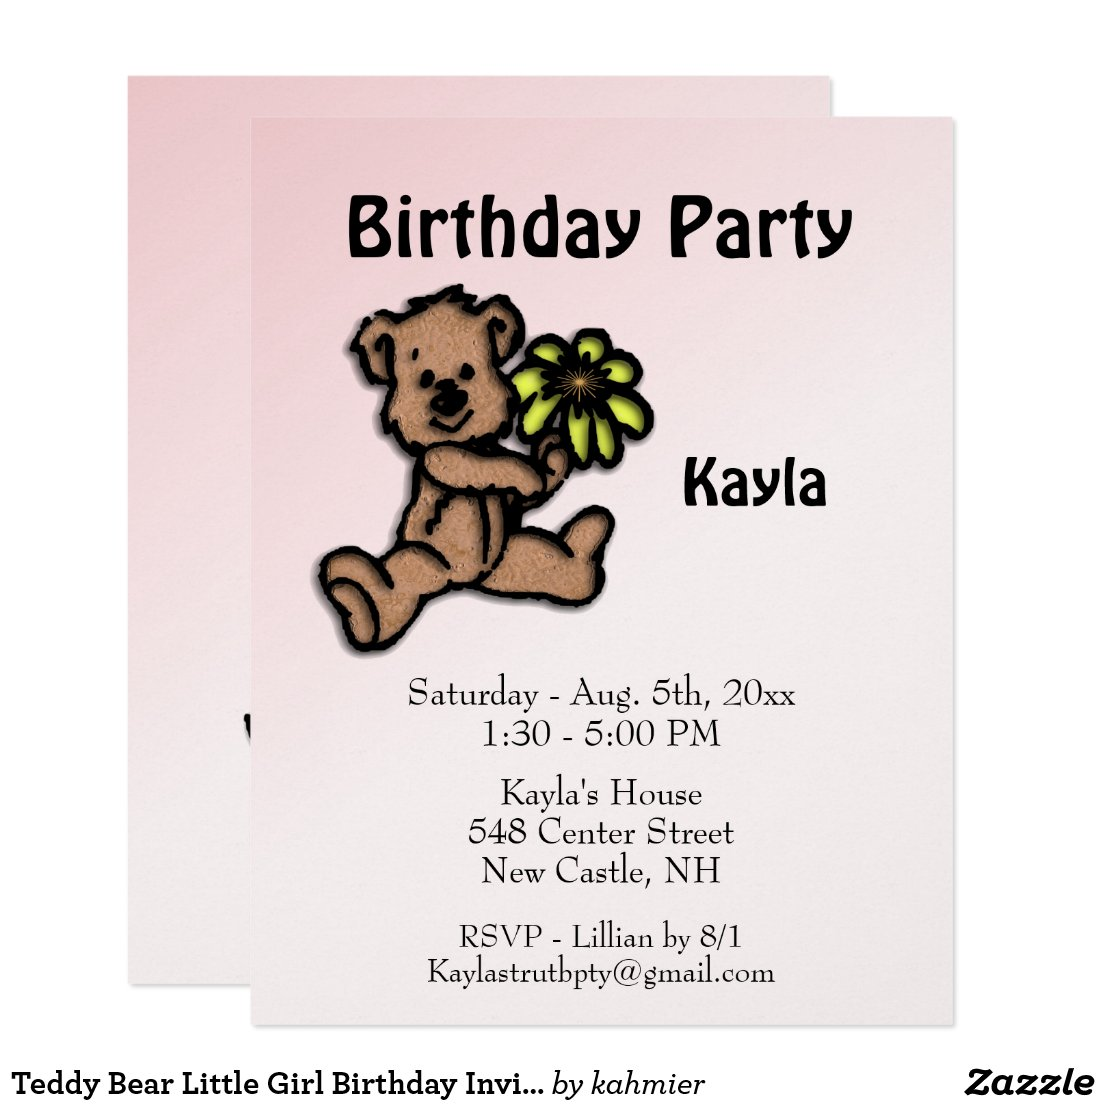 Teddy Bear Little Girl Birthday Invitation